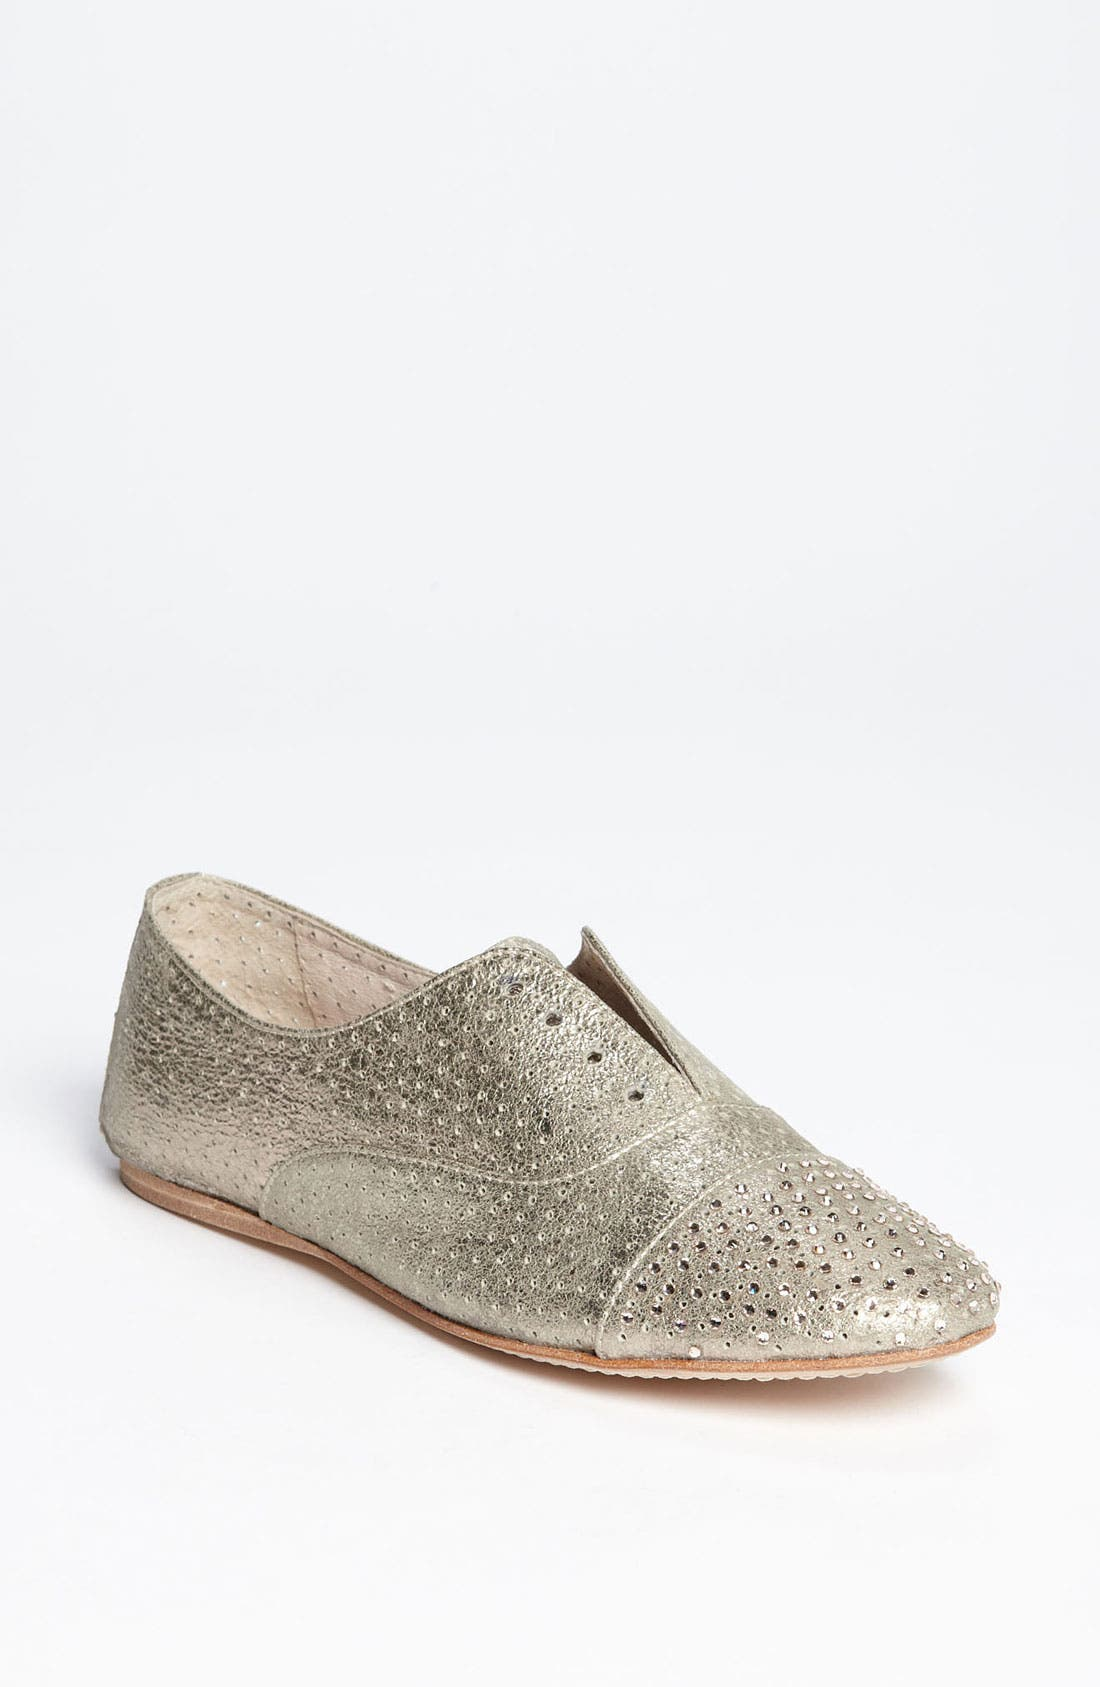 Alternate Image 1 Selected - Steve Madden 'Tudor-S' Flat